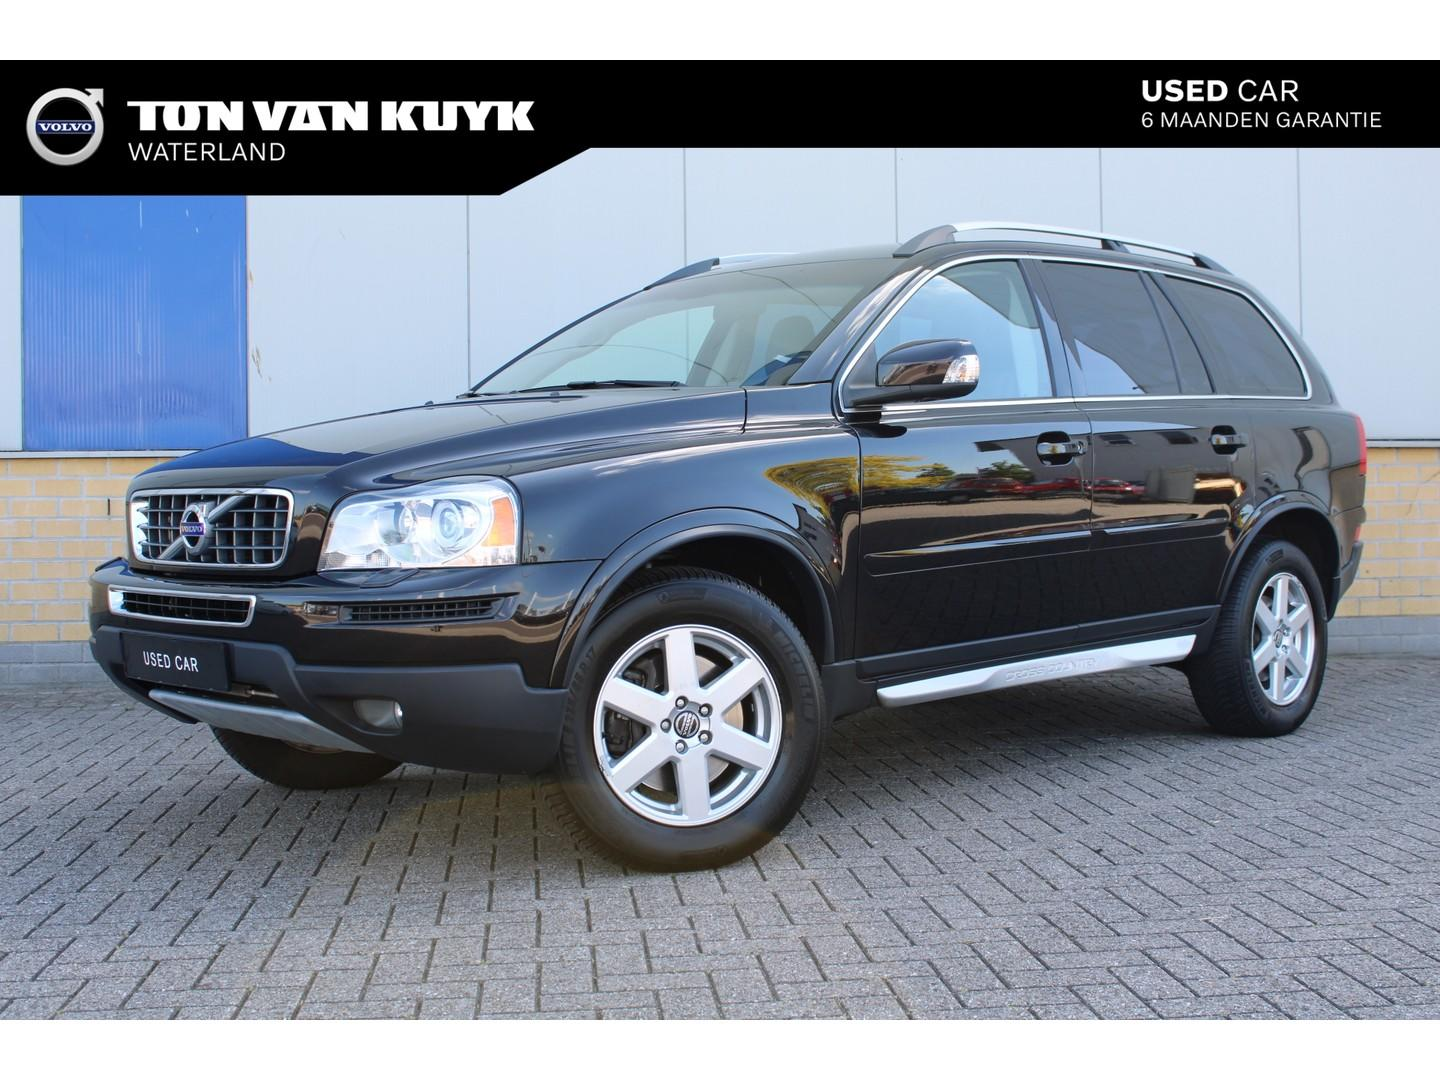 Volvo Xc90 D5 2.4 200pk automaat awd limited edition / 7 persoons / bluetooth / parkeer camera